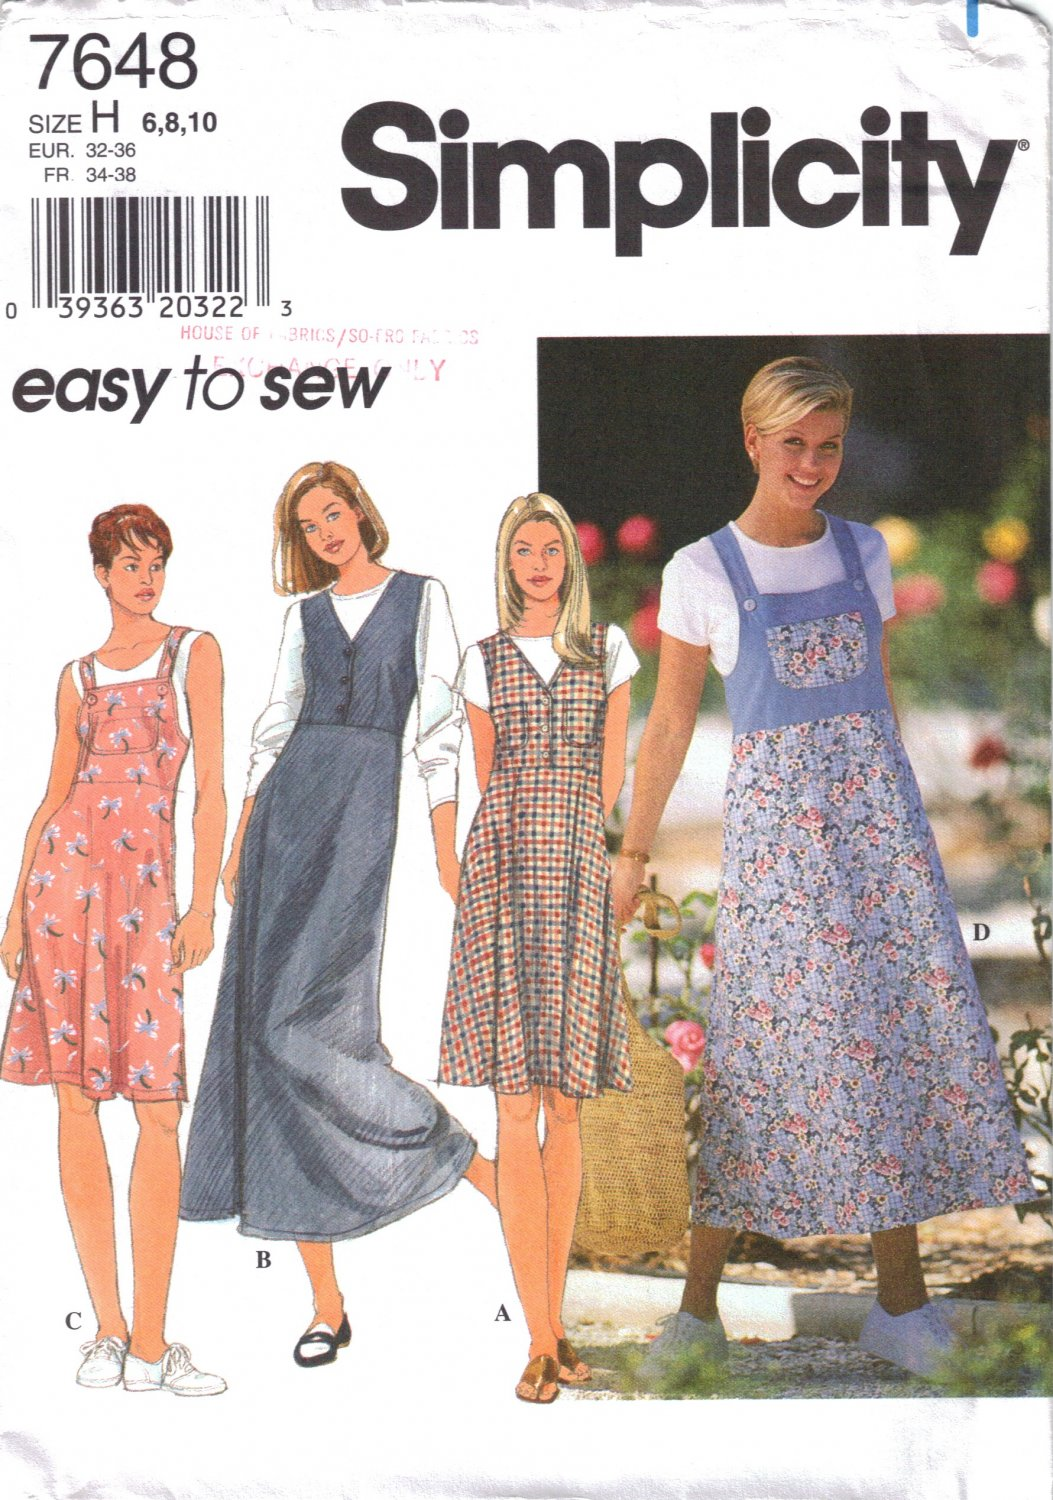 Misses' Jumper Sewing Pattern Size 6-10 Simplicity 7648 UNCUT